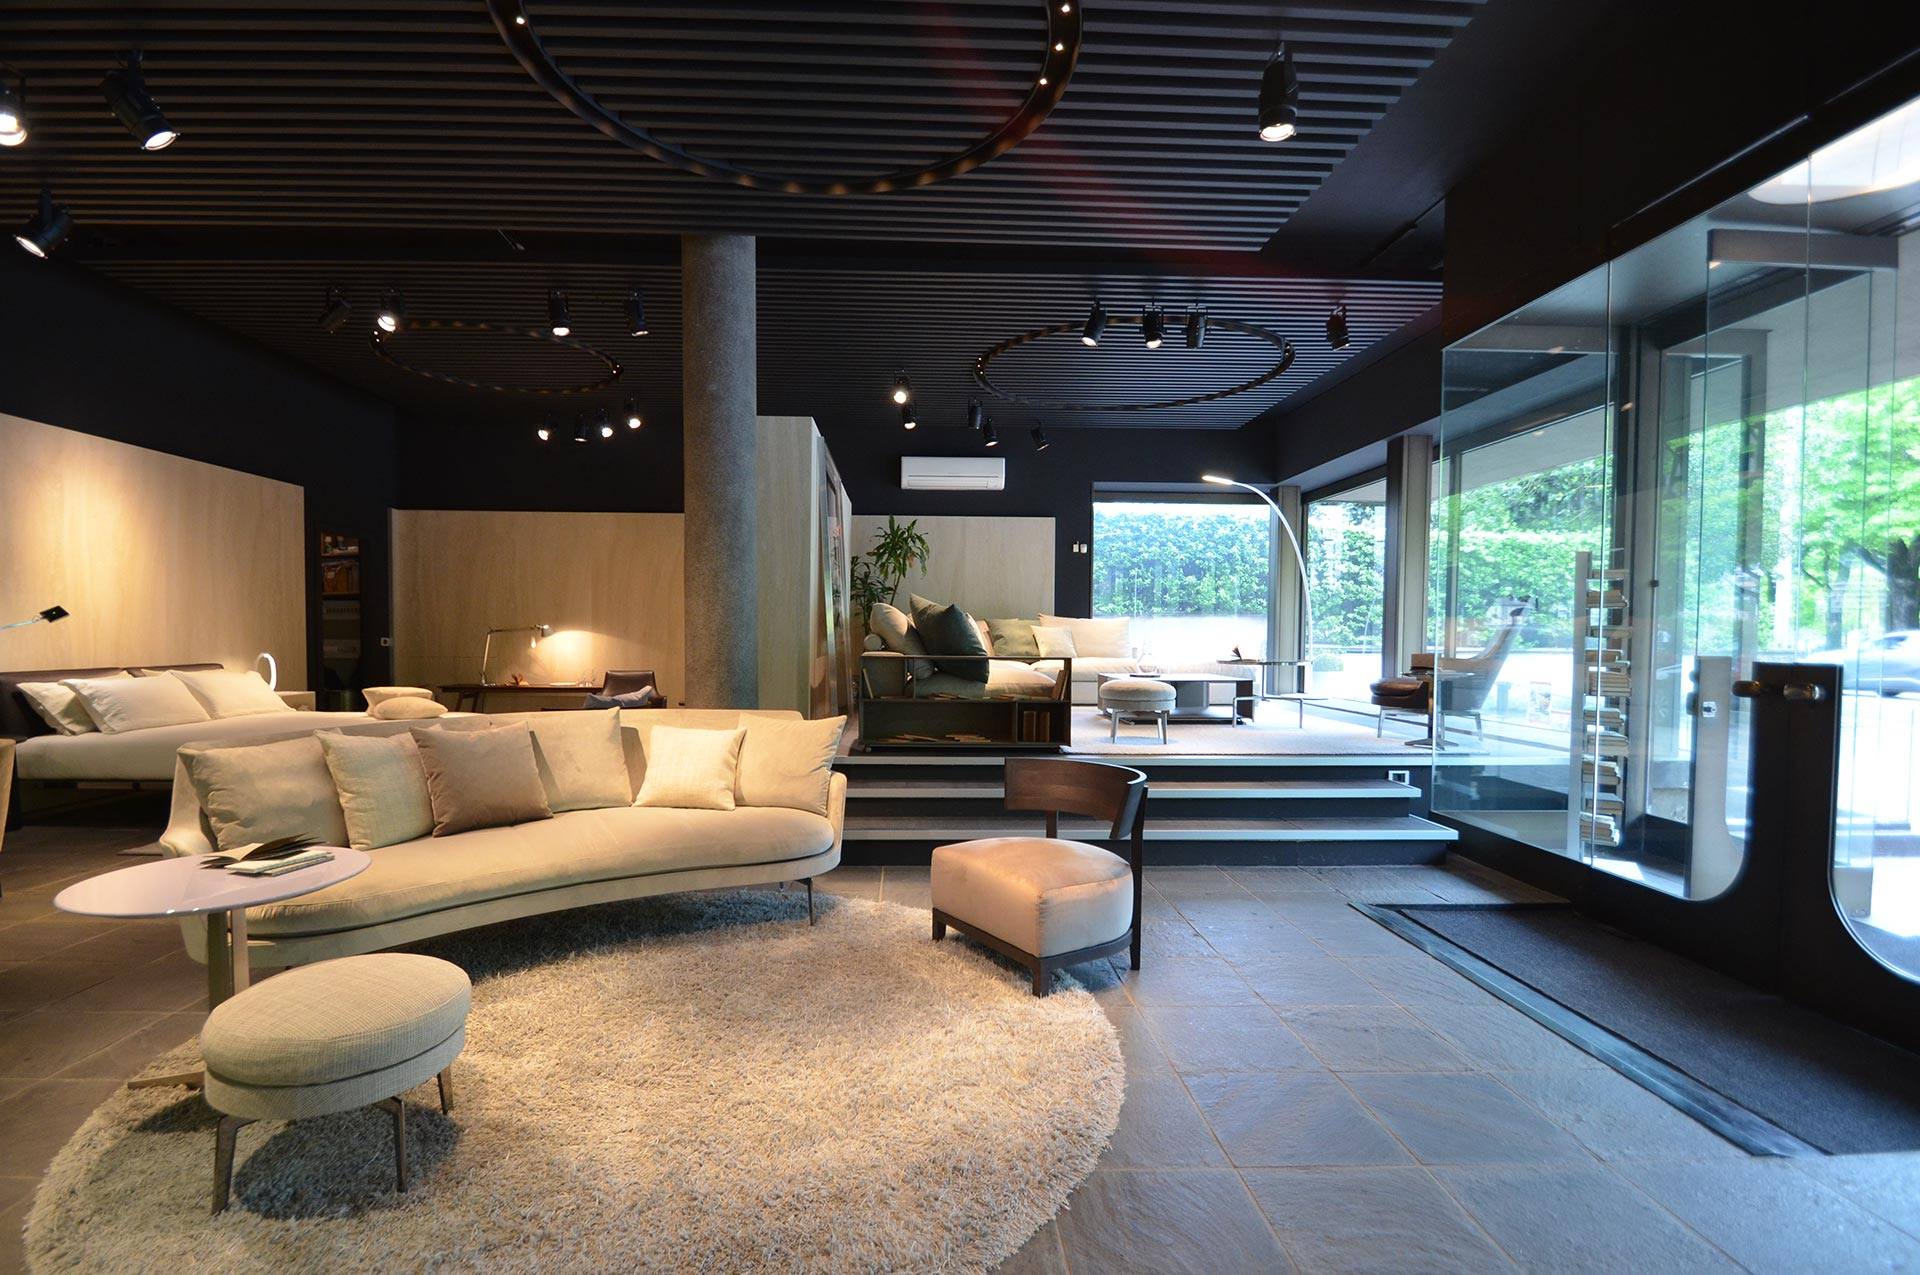 Gerosa design showroom como lago showroom como for Design lago